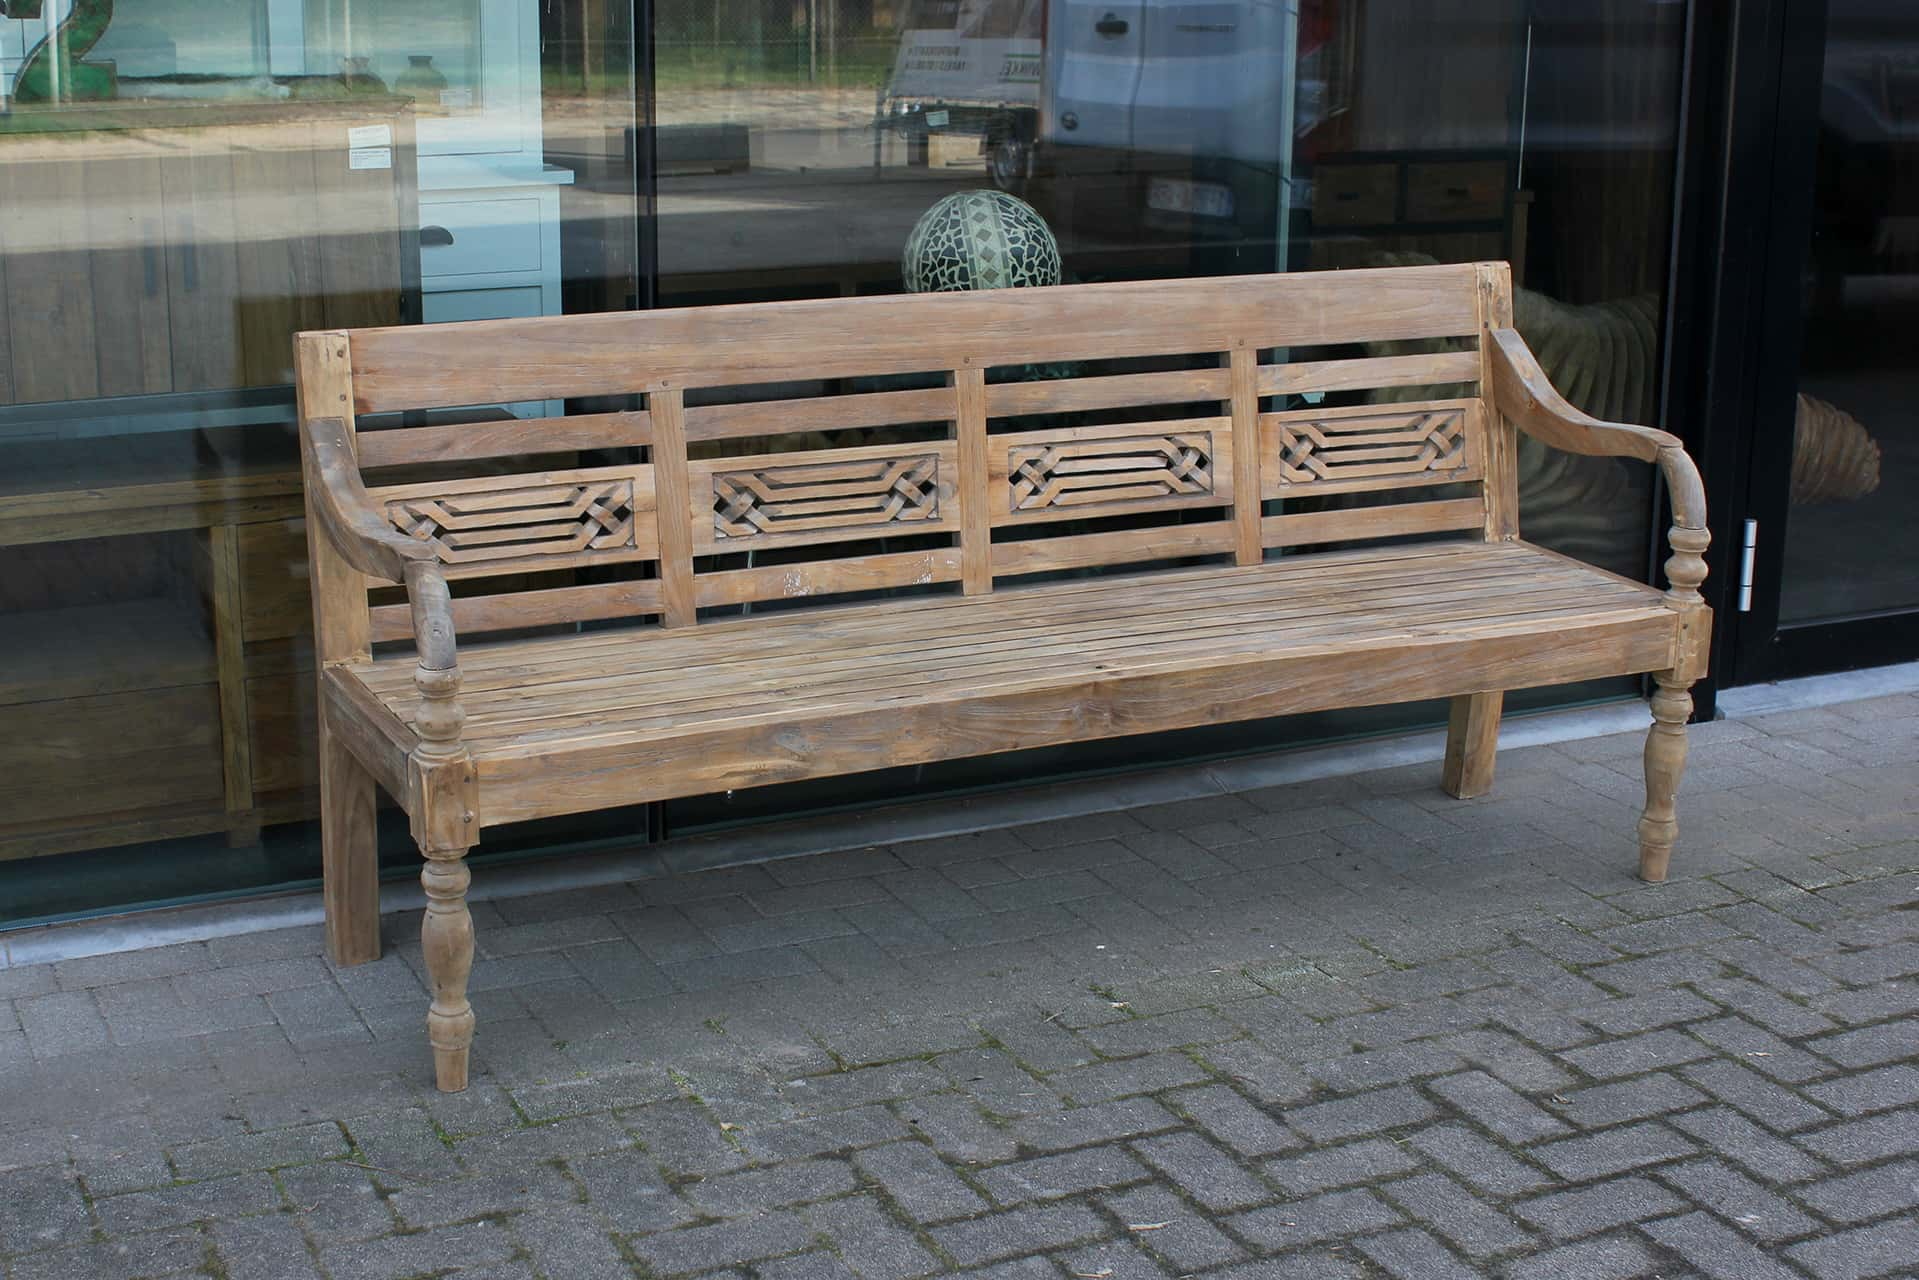 Bangku Dijalin O200G Old | luxury old teak garden bench with tight braided motif in the back. Station bench from Indonesia.